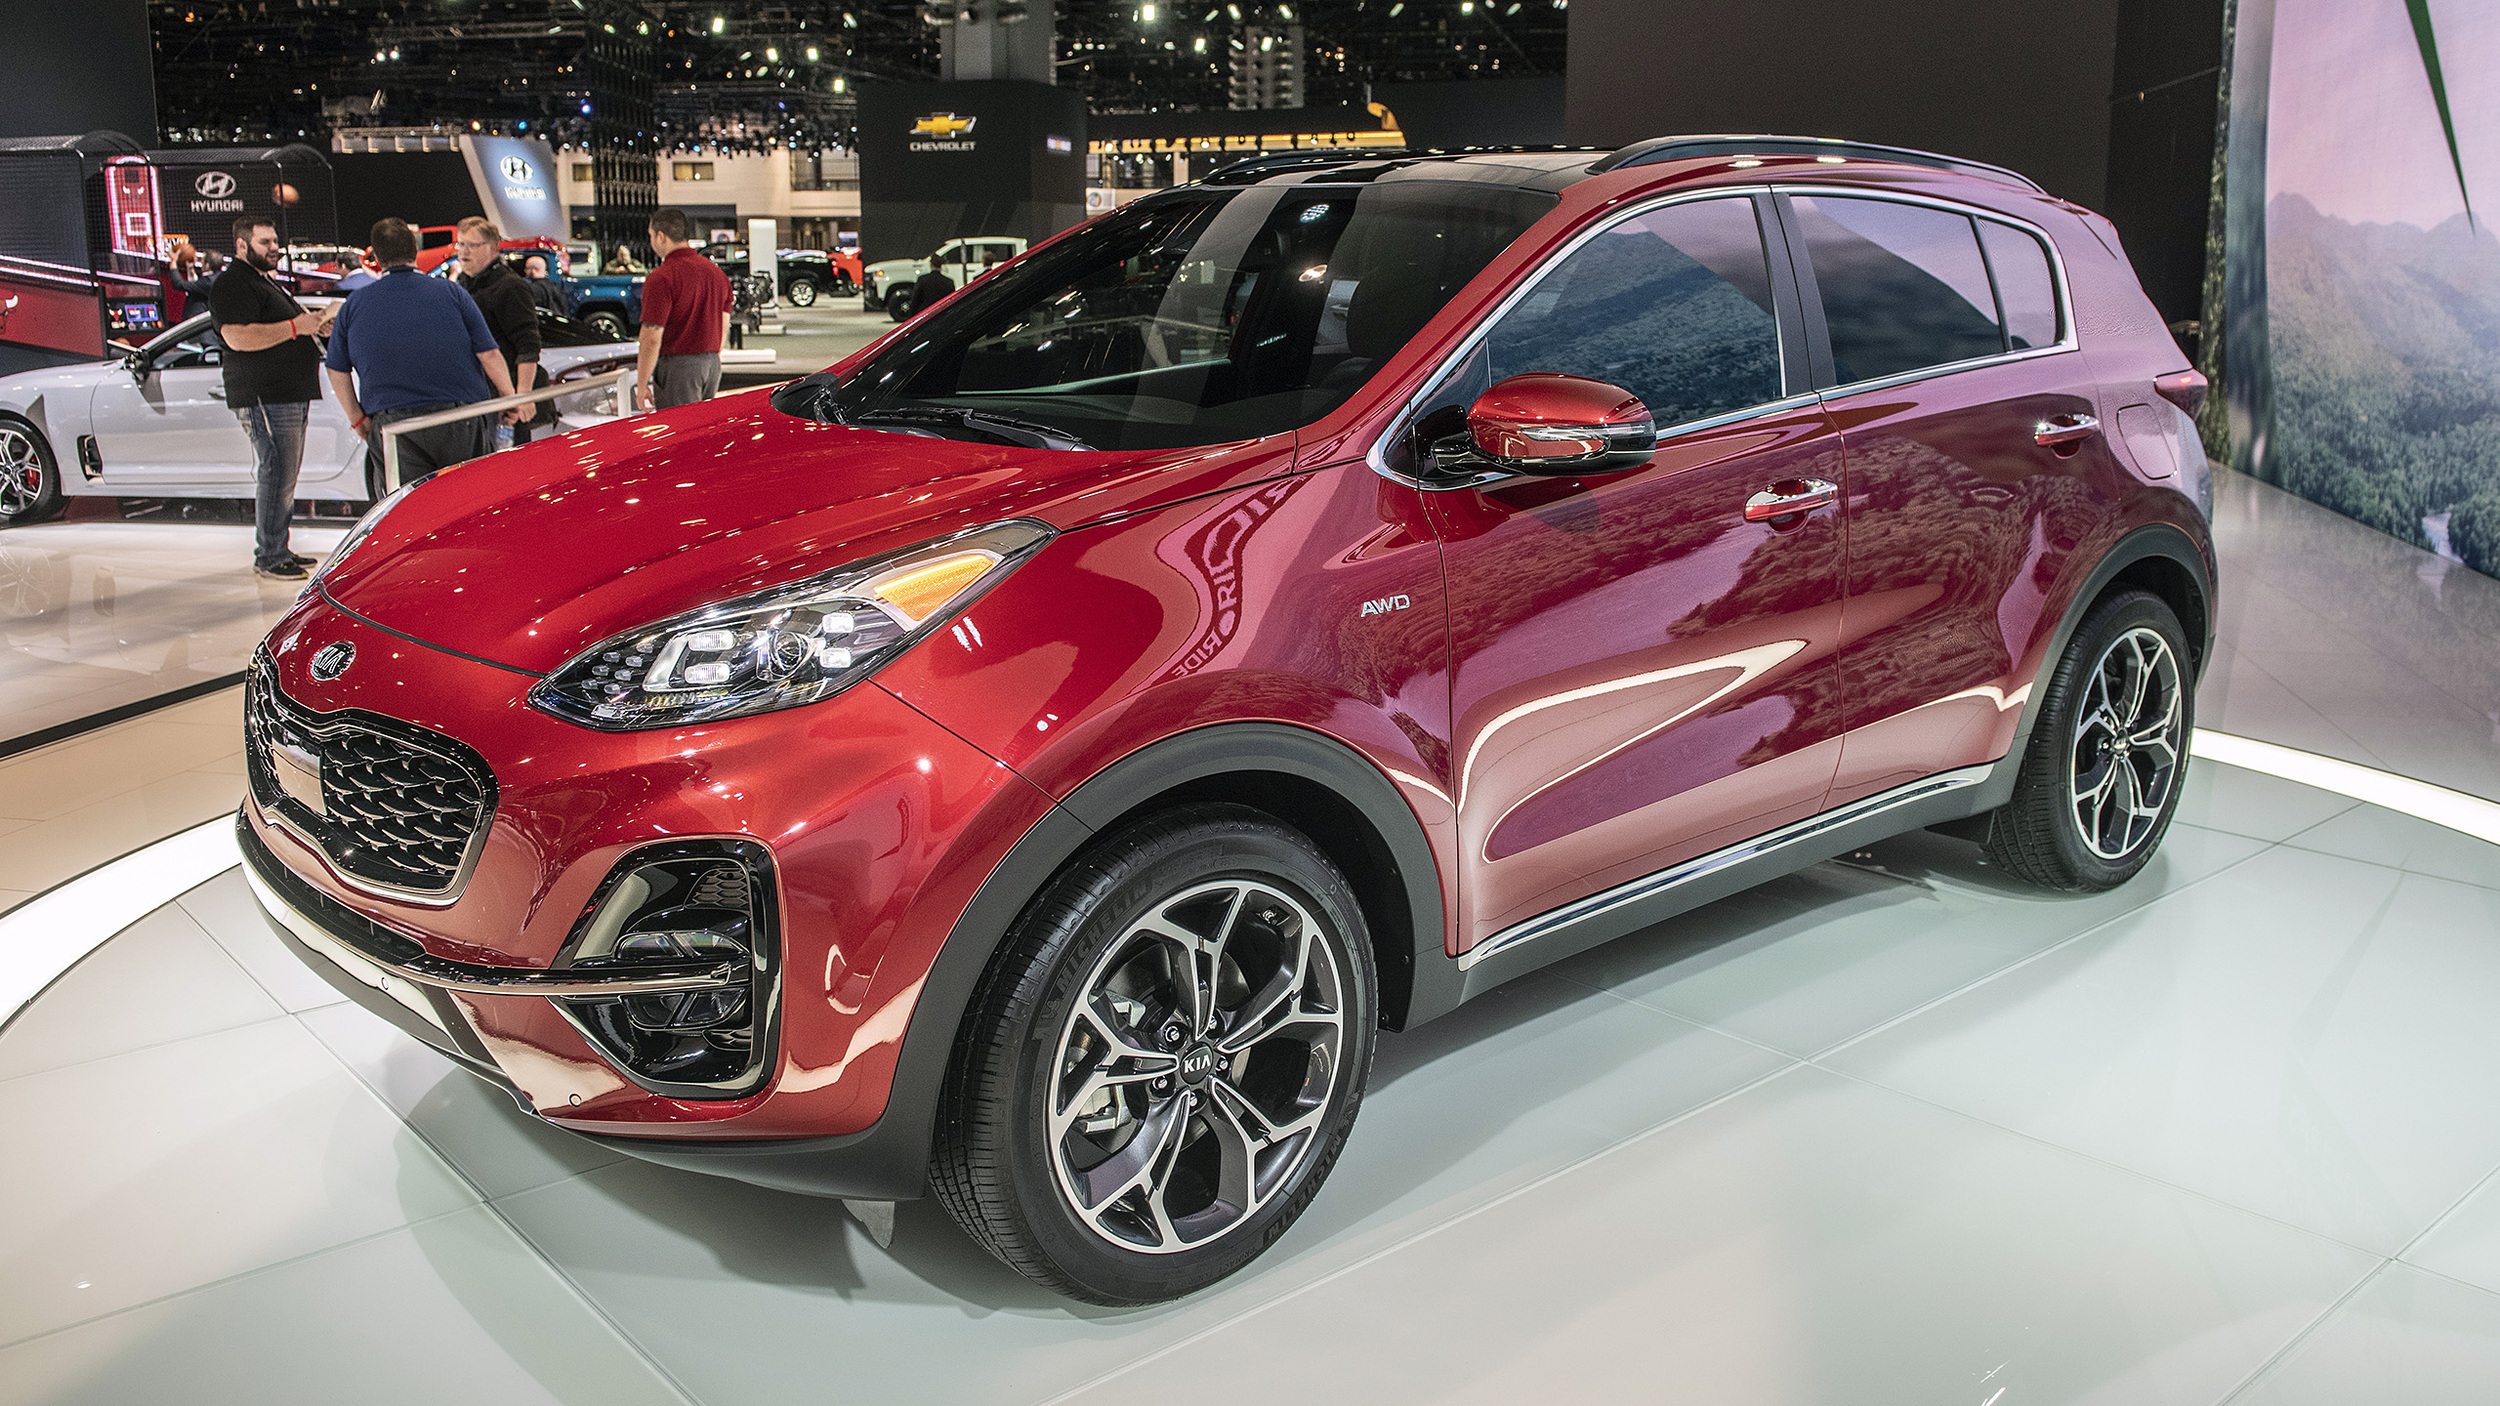 2020 kia sportage: here's a look at this updated compact